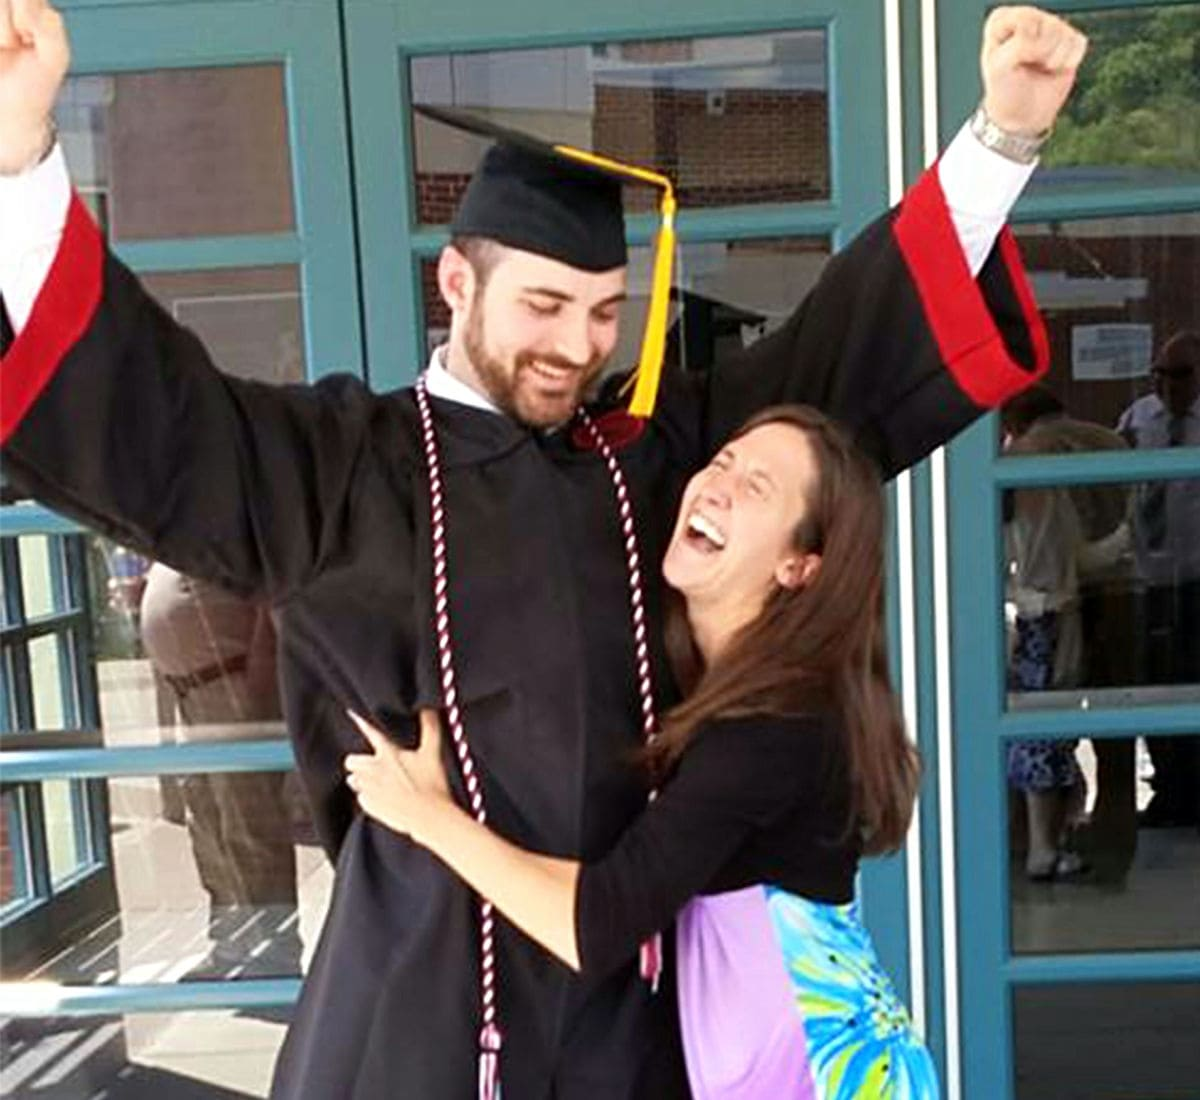 college guy in graduation cap and gown with his arms up while his mom is hugging him and laughing